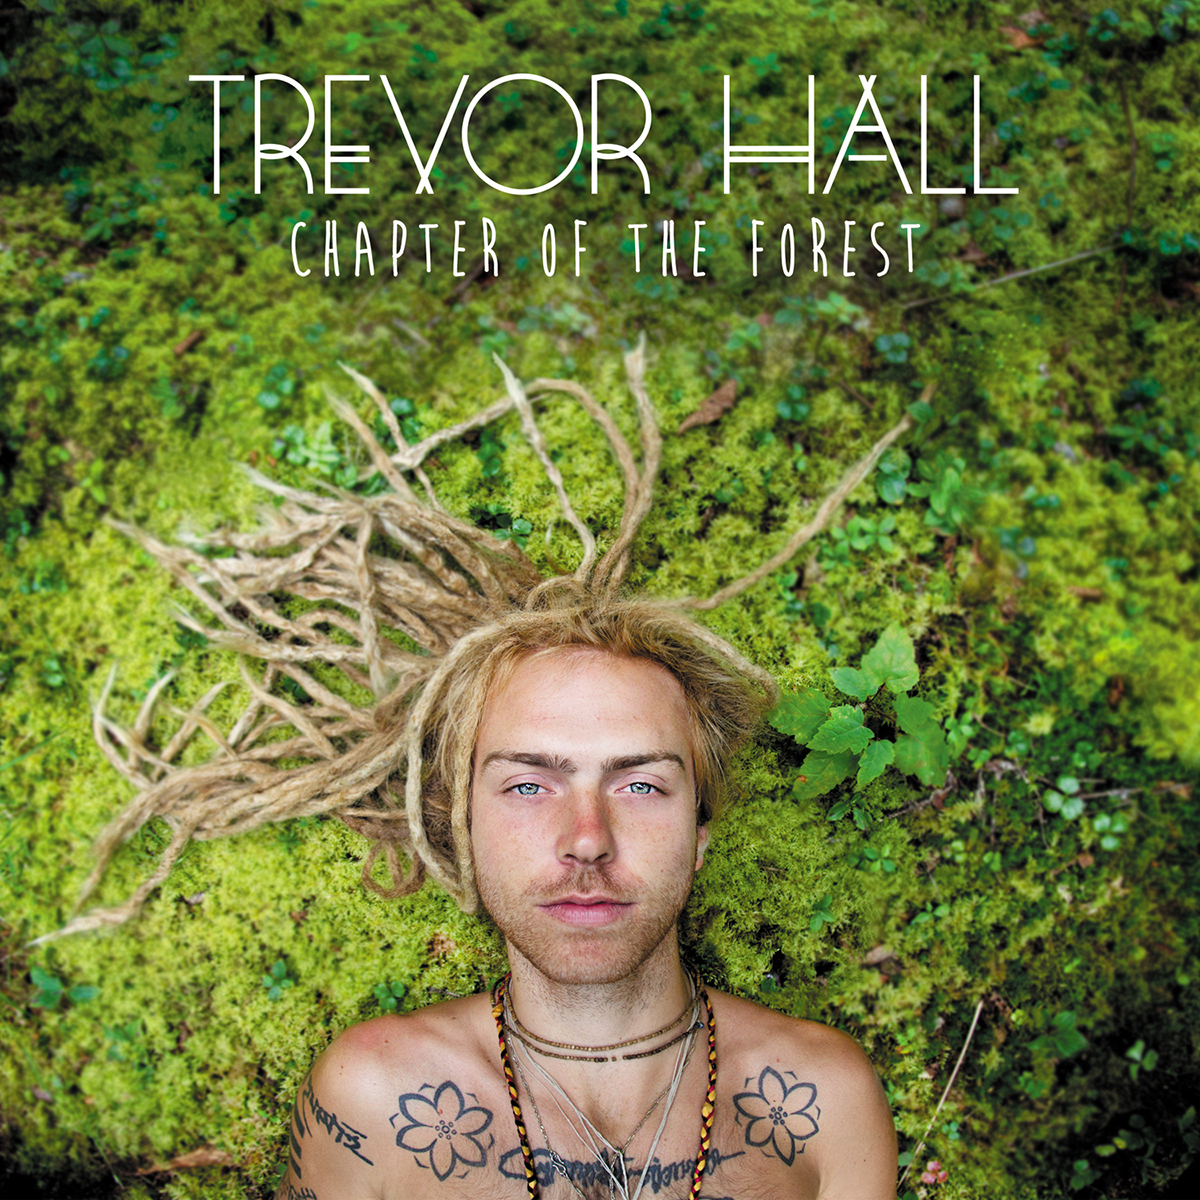 Trevor Hall - Chapter of the Forest CD